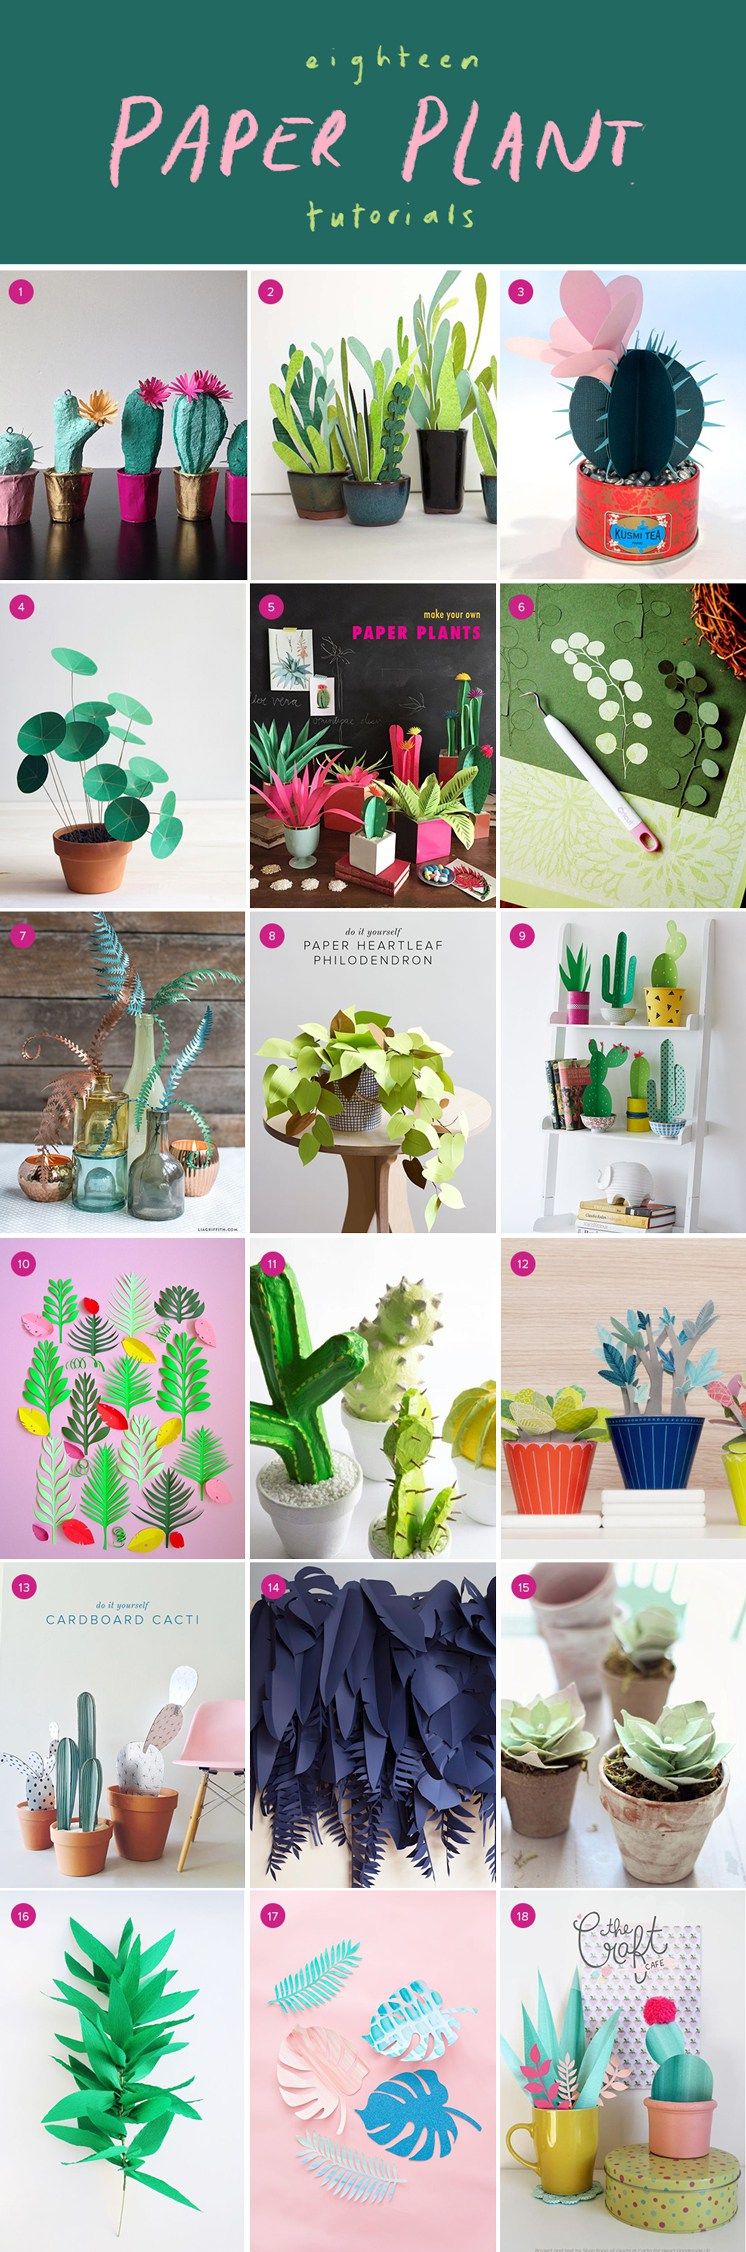 18-best-paper-plant-tutorials